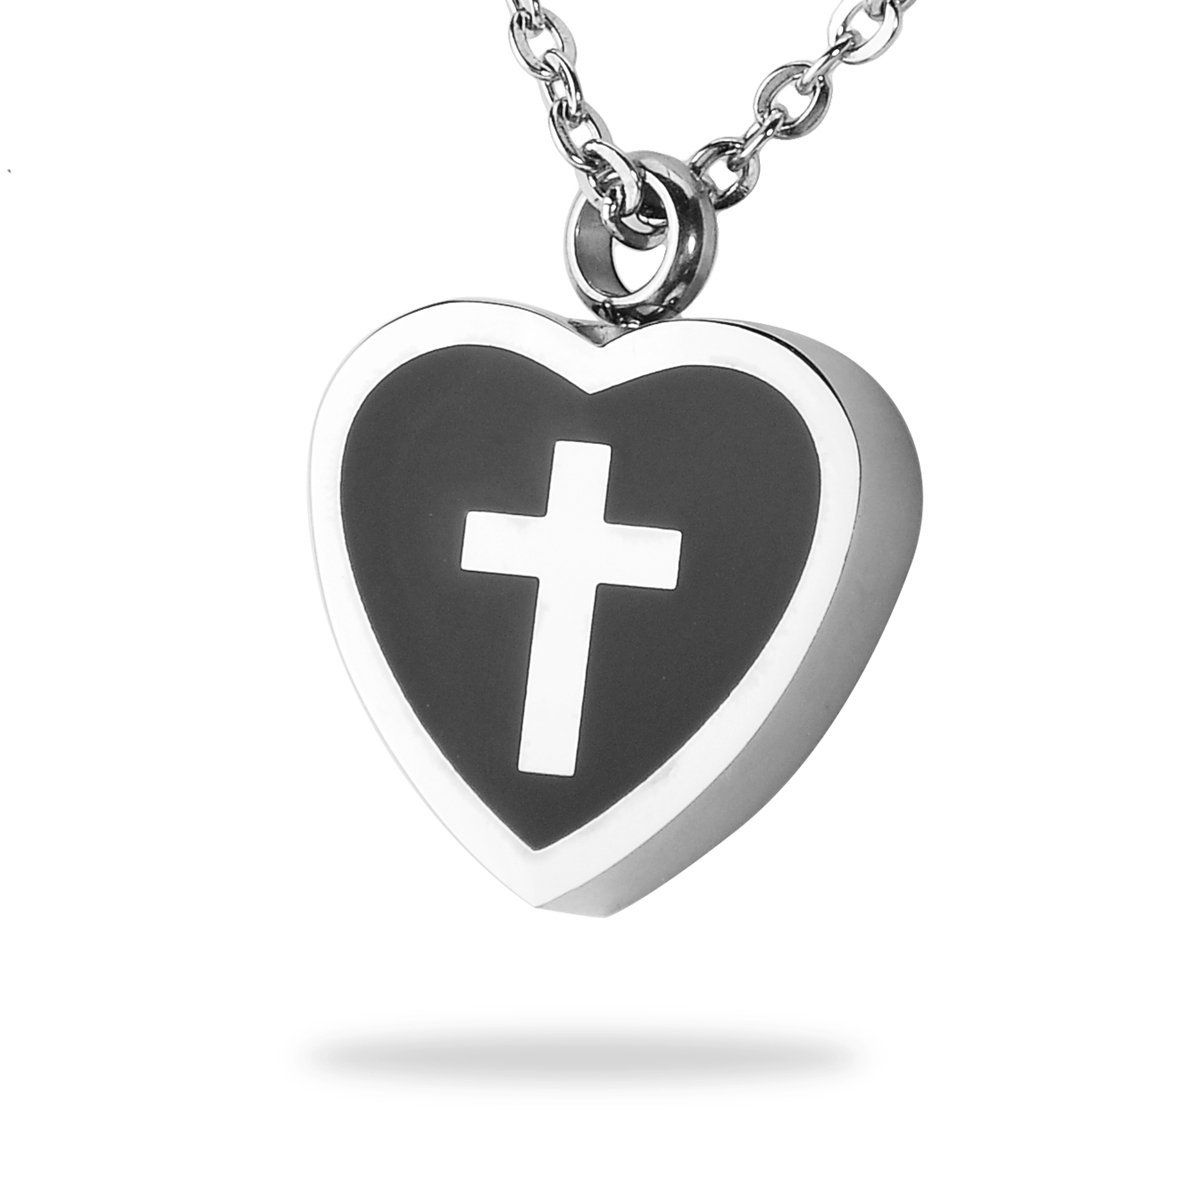 HooAMI Cremation Jewelry Cross Heart Pendant Memorial Urn Necklace Ash Holder Stainless Steel Silver Black >>> Click image for more details.